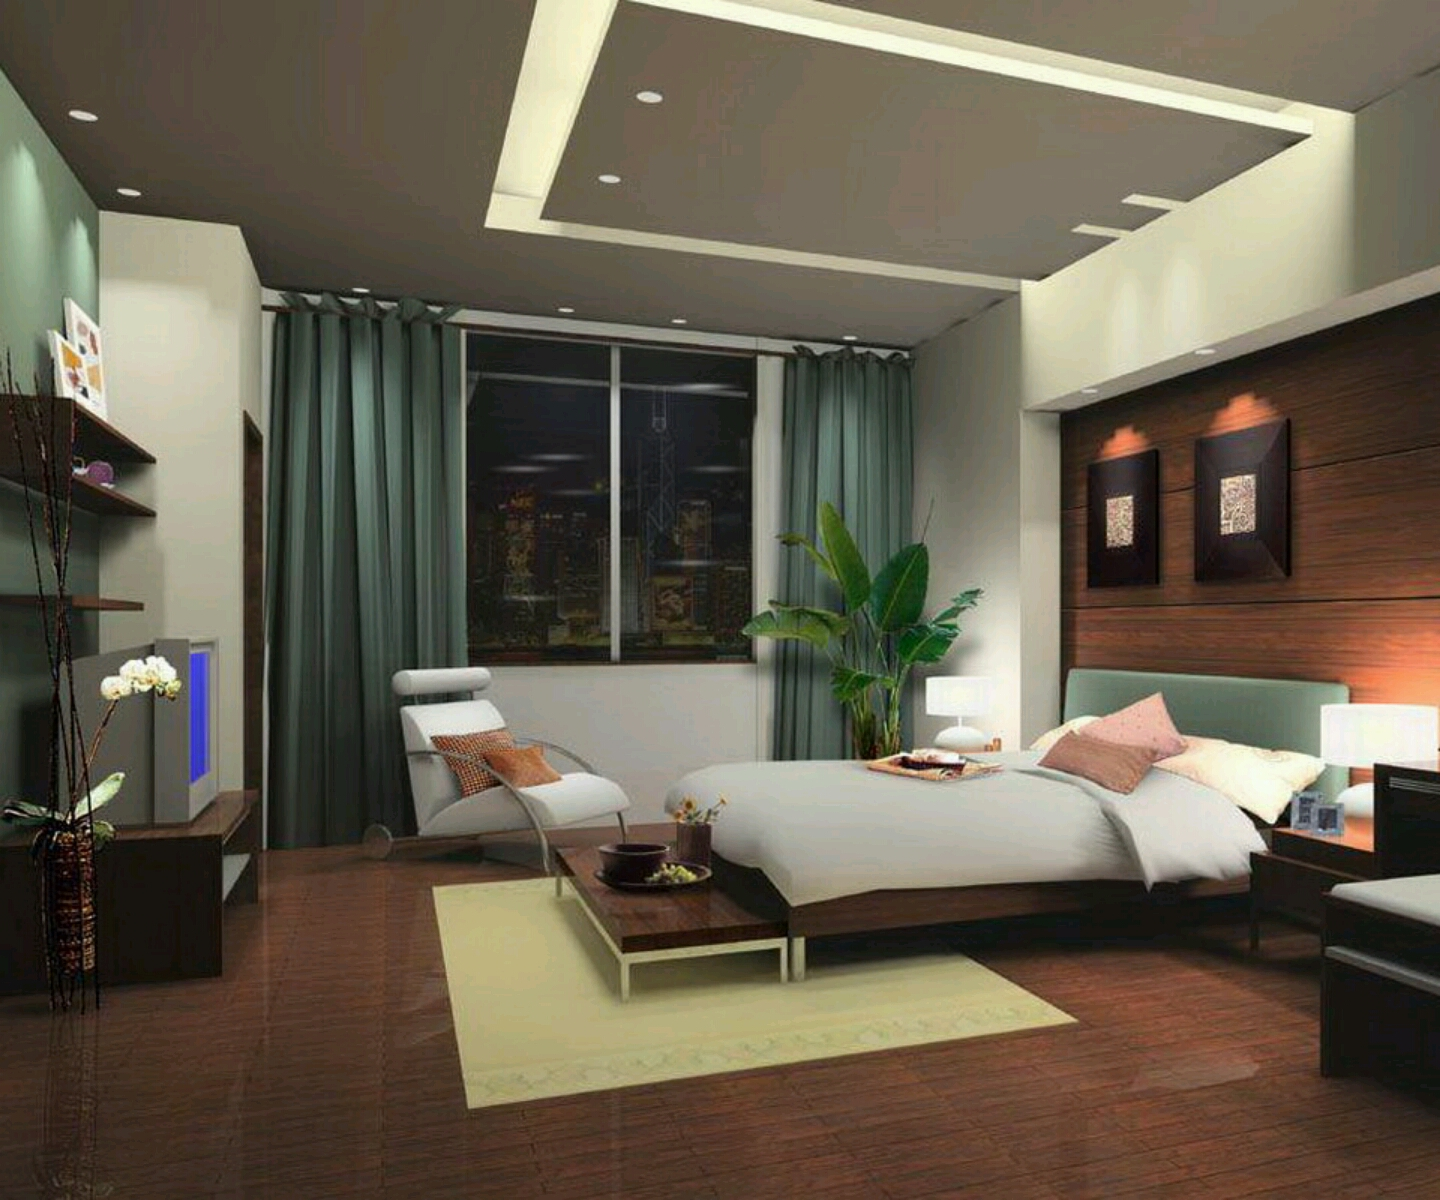 New home designs latest modern bedrooms designs best ideas - Design of bedroom ...